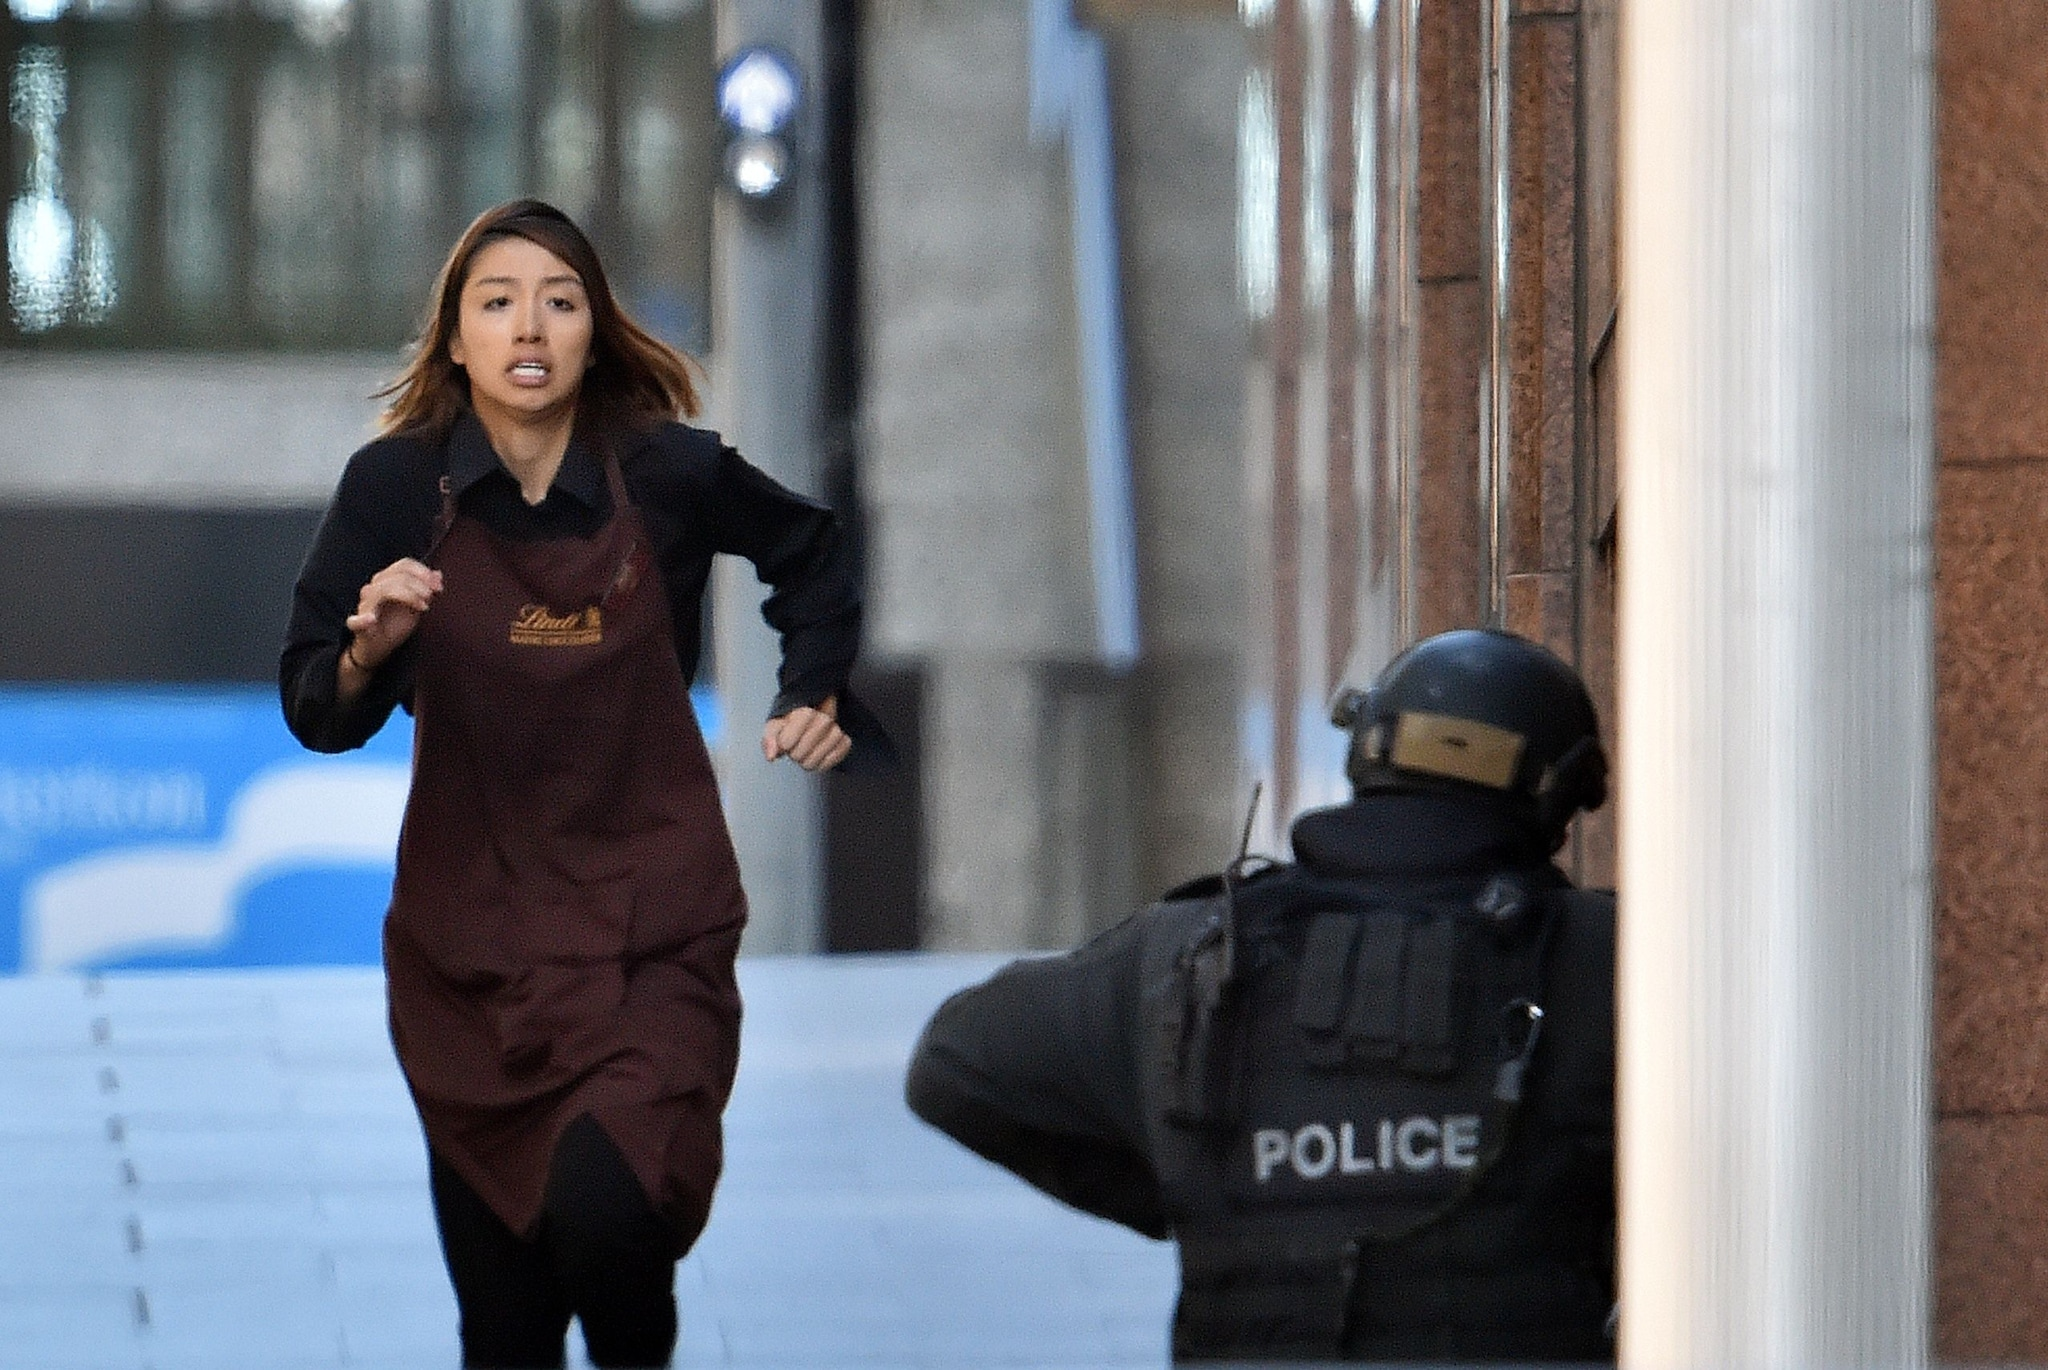 A hostage runs from the scene of the Lindt cafe in Sydney Tuesday during standoff with a gunman that resulted in three killed and four injured. (Photo: AFP/Saeed Khan)